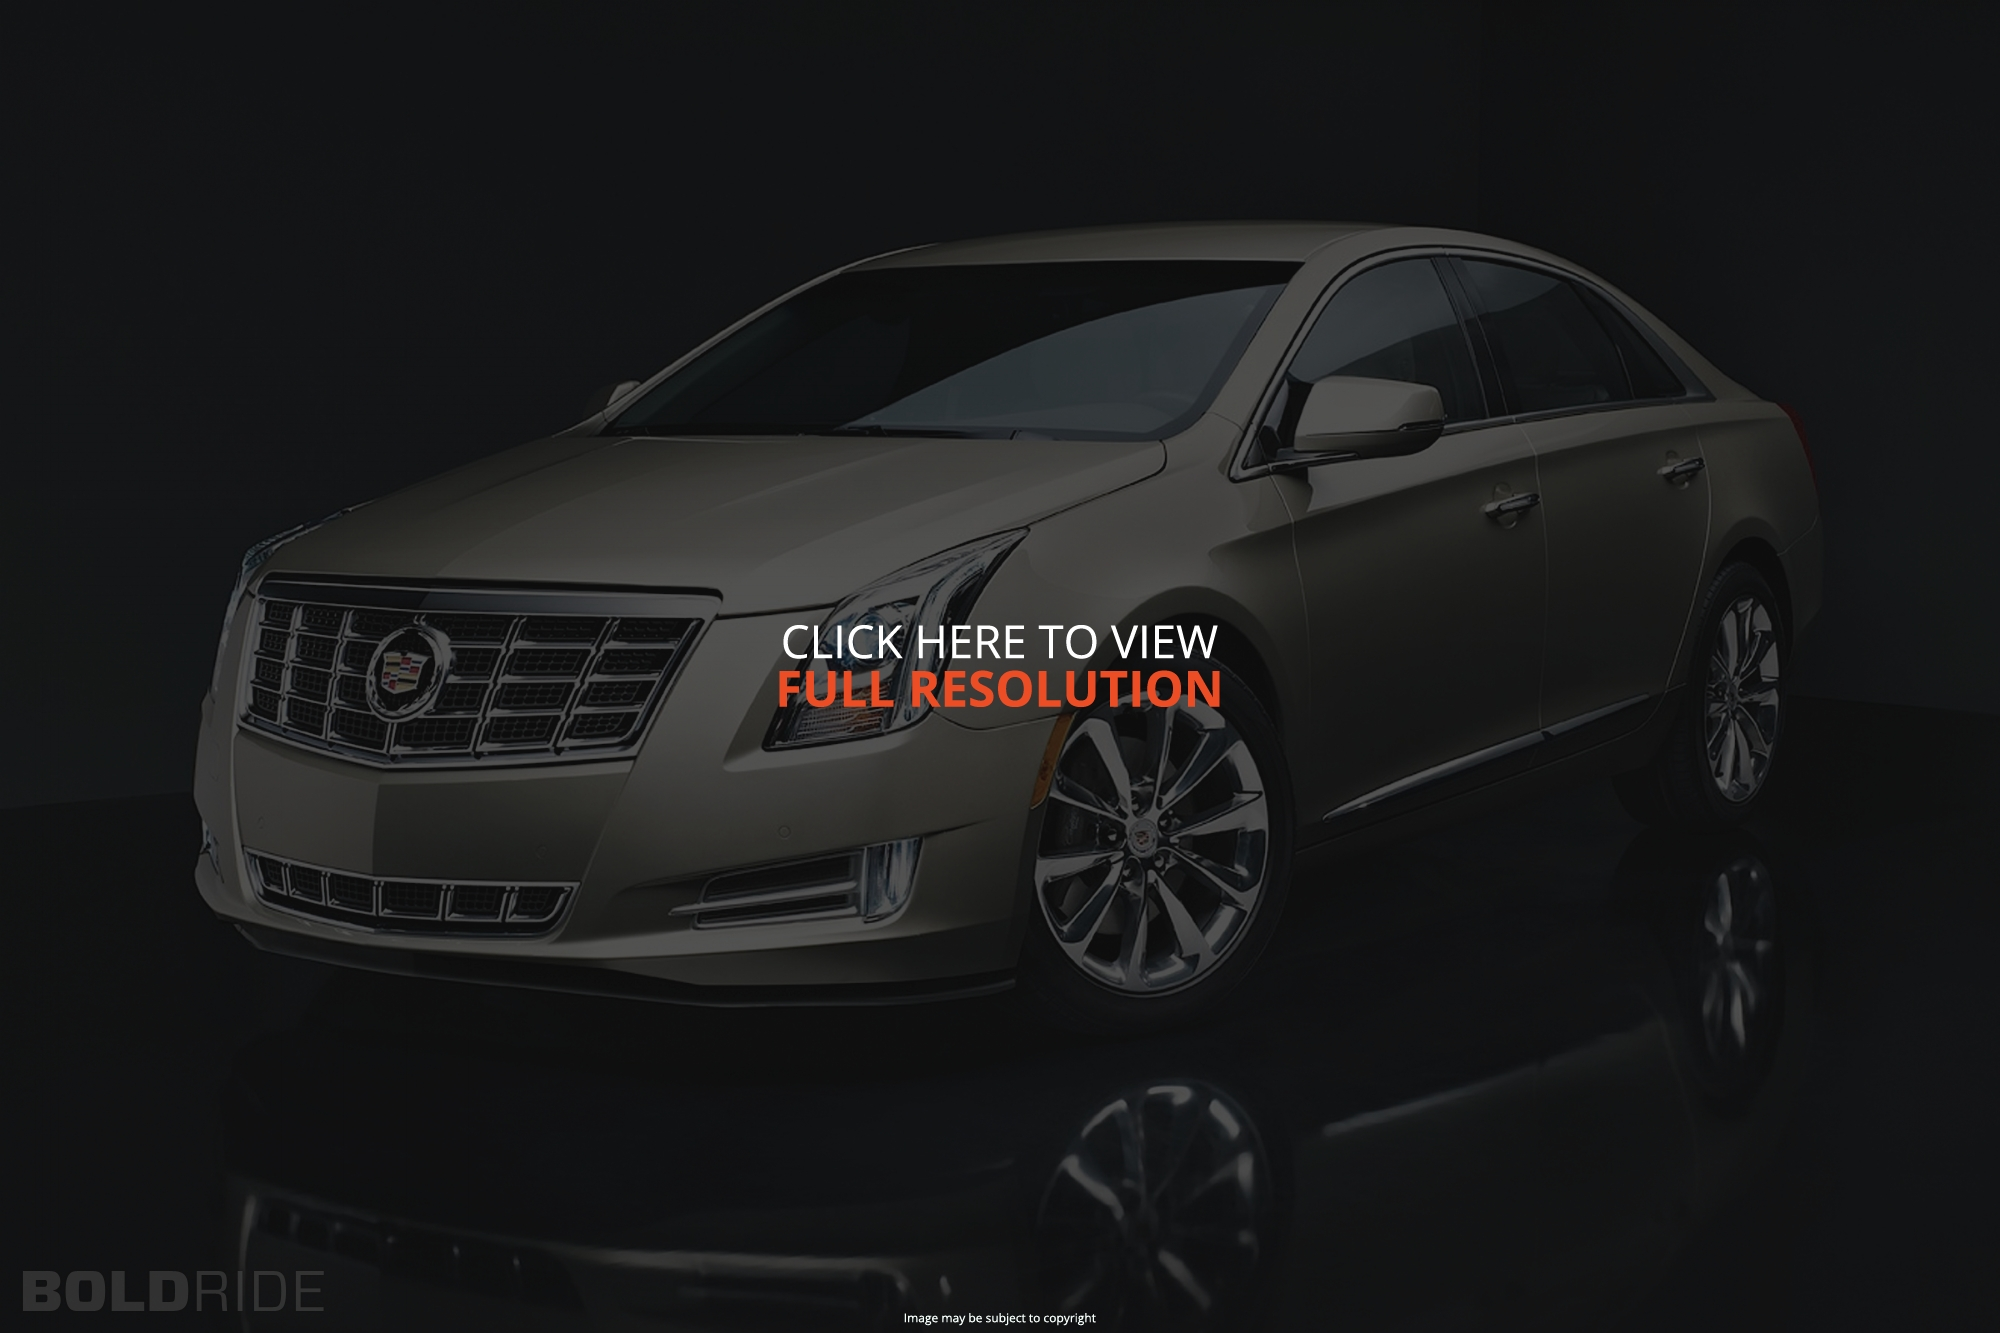 cadillac xts pictures #5